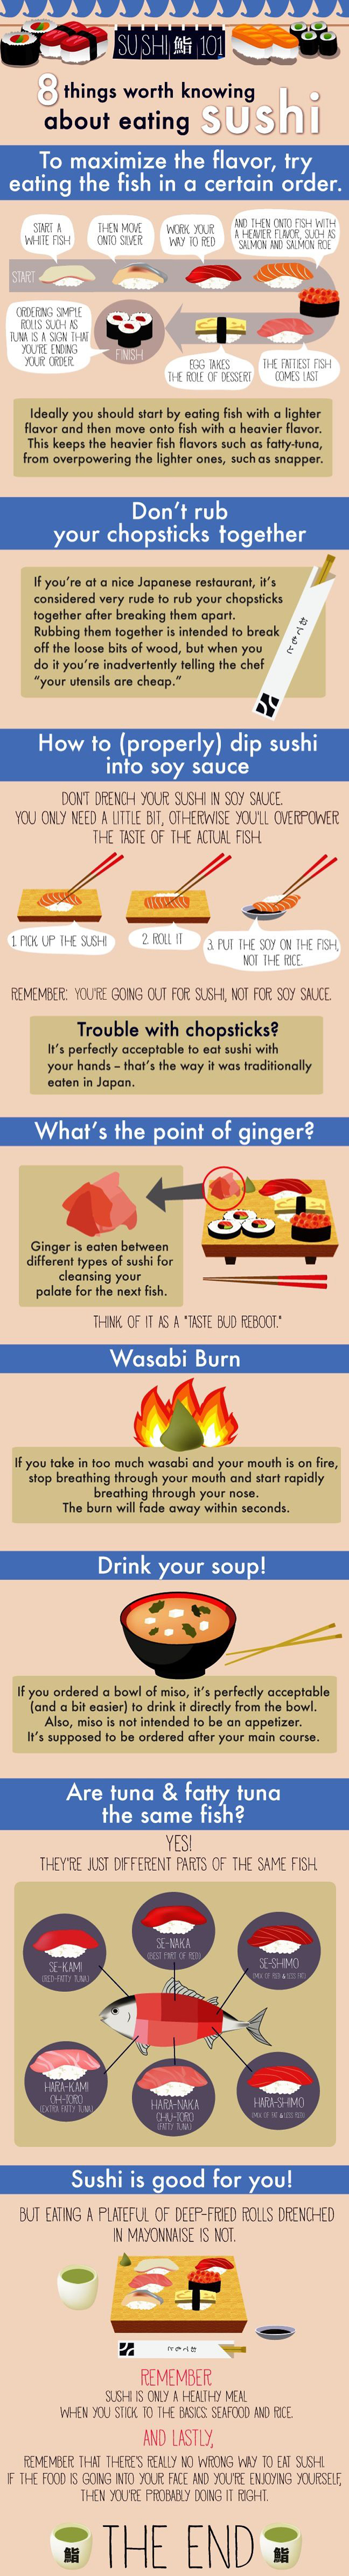 8 thing to know about sushi